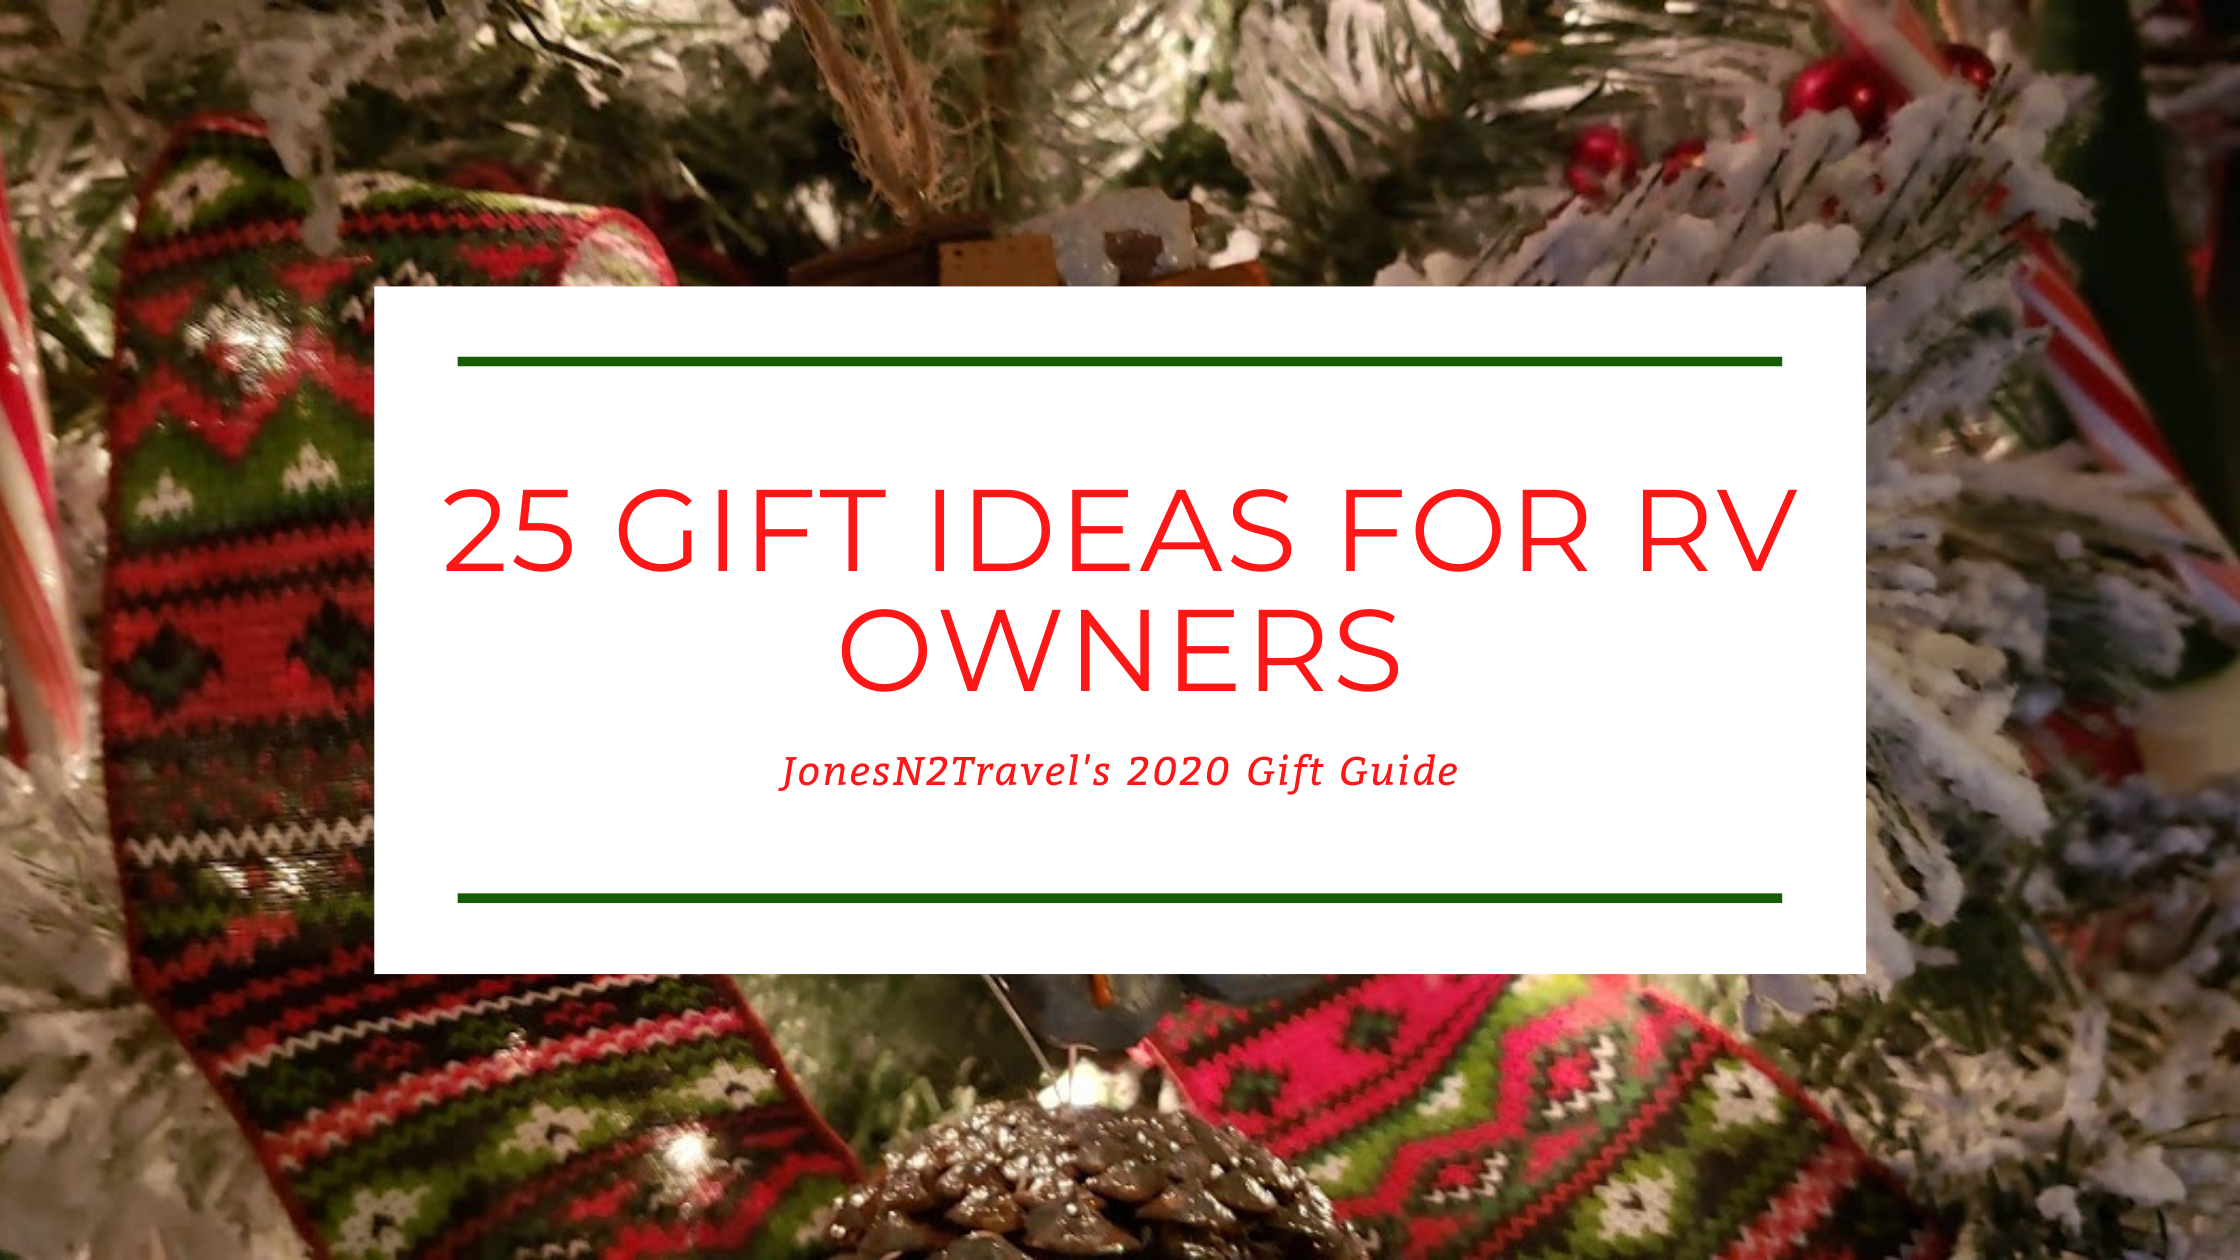 25 Gift Ideas for RV Owners - Our 2020 Gift Guide